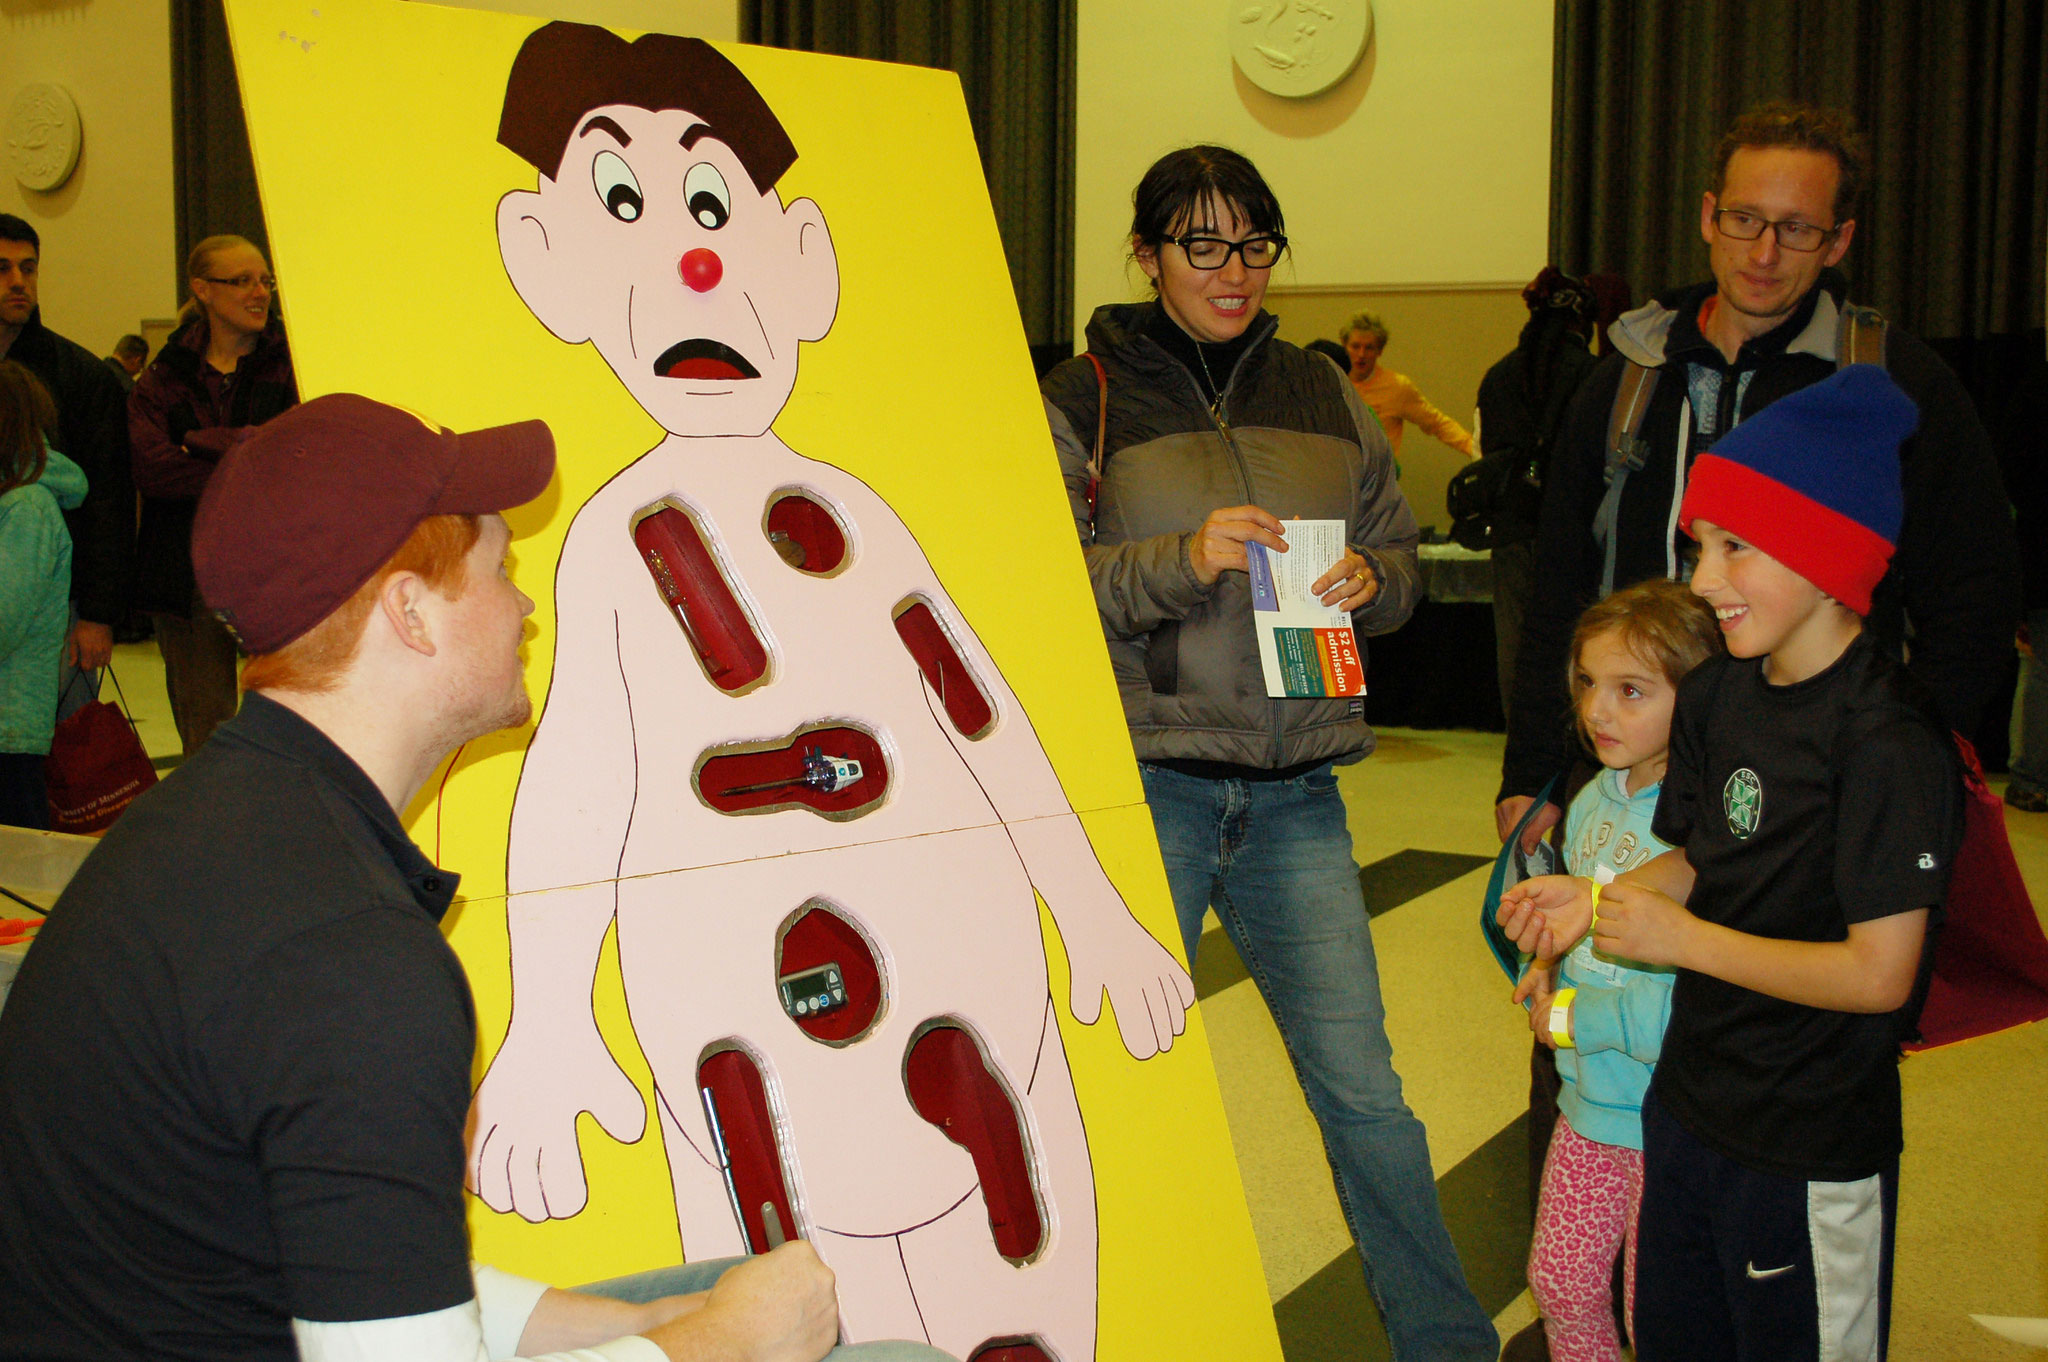 K-12 outreach with life size Operation game